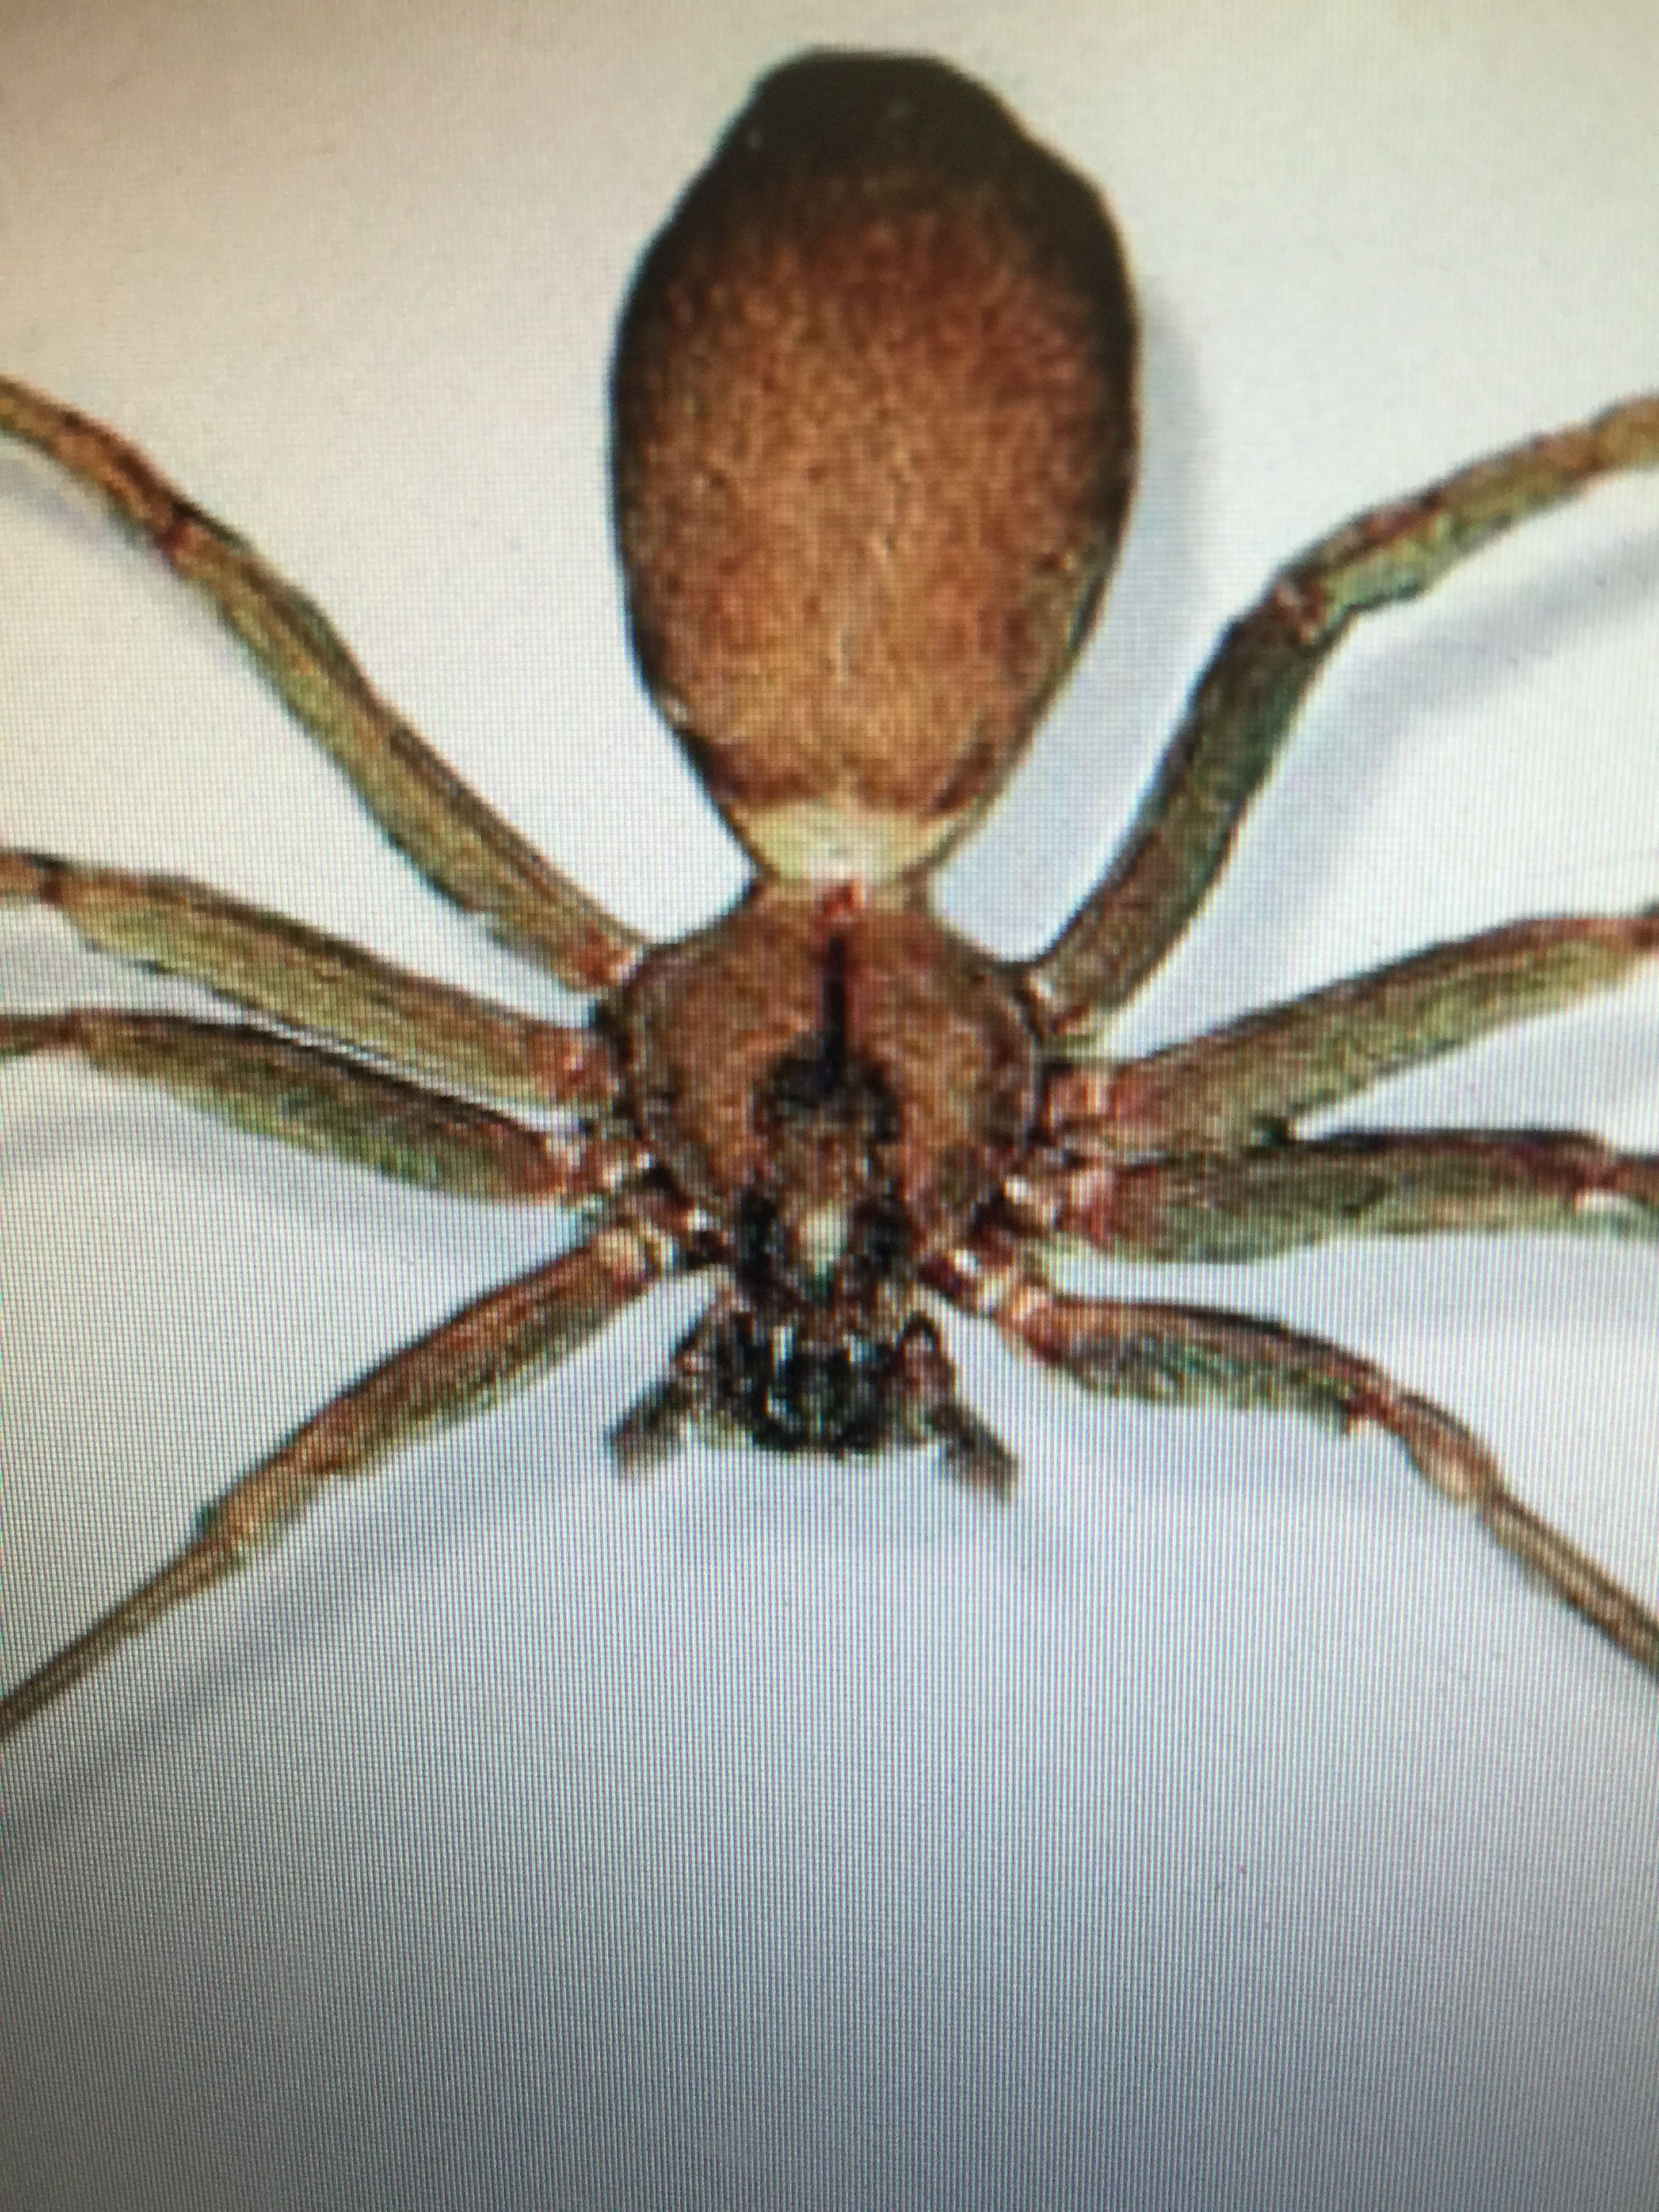 Brown Recluse Spider - notice the \